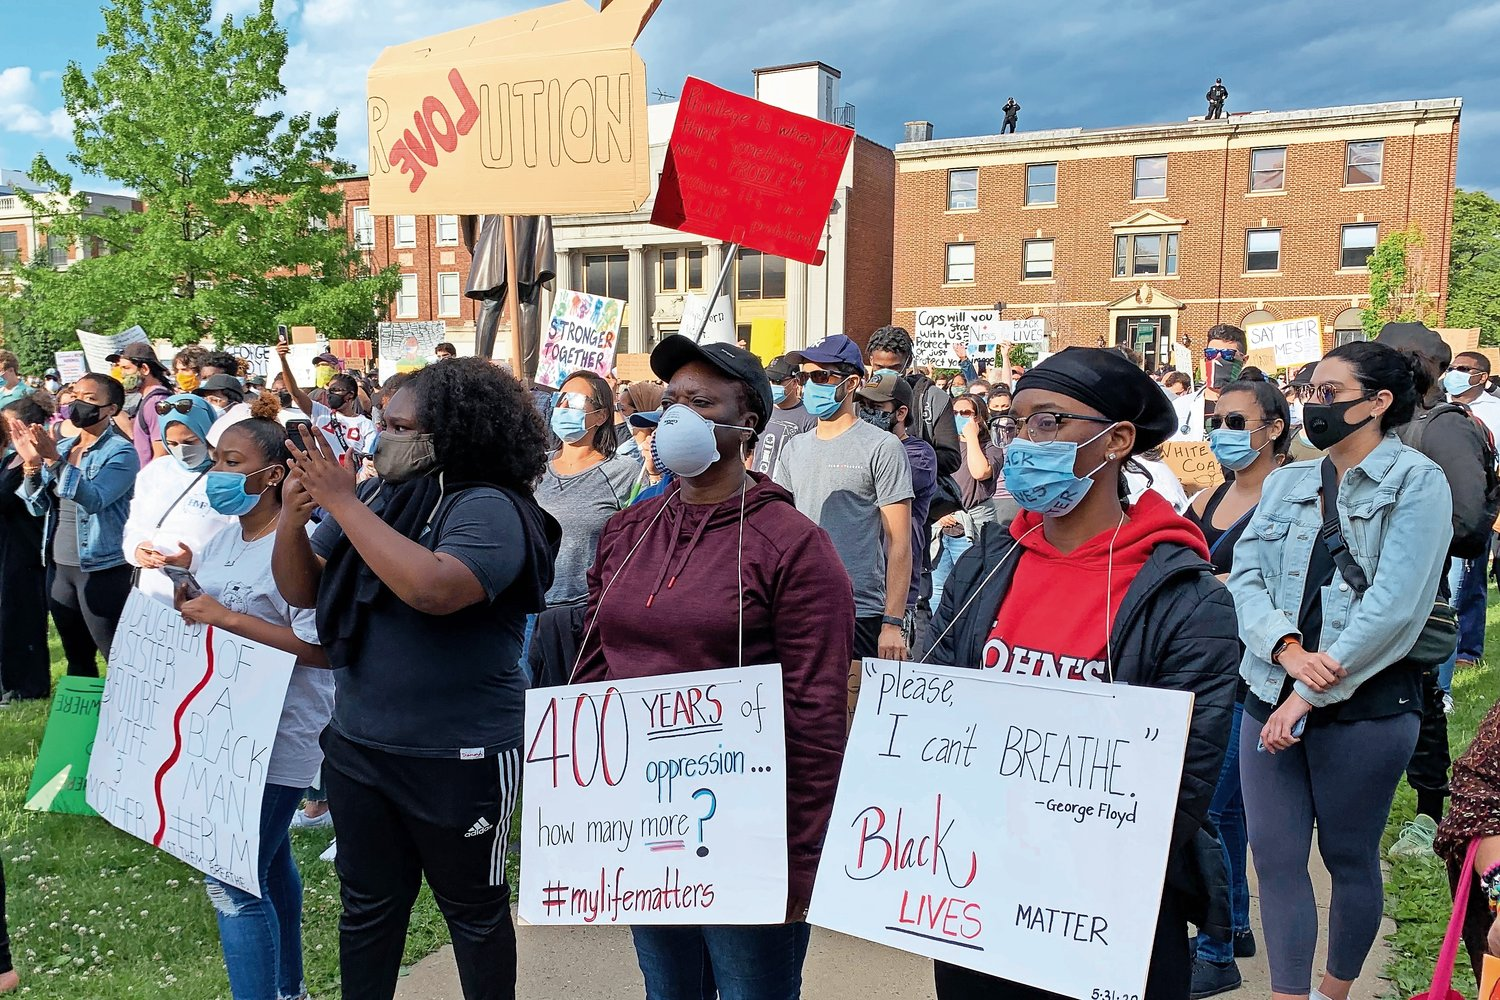 Dozens of people gathered at the Theodore Roosevelt Executive and Legislative Building on Monday to protest the killing of George Floyd by a Minneapolis police officer on Memorial Day.